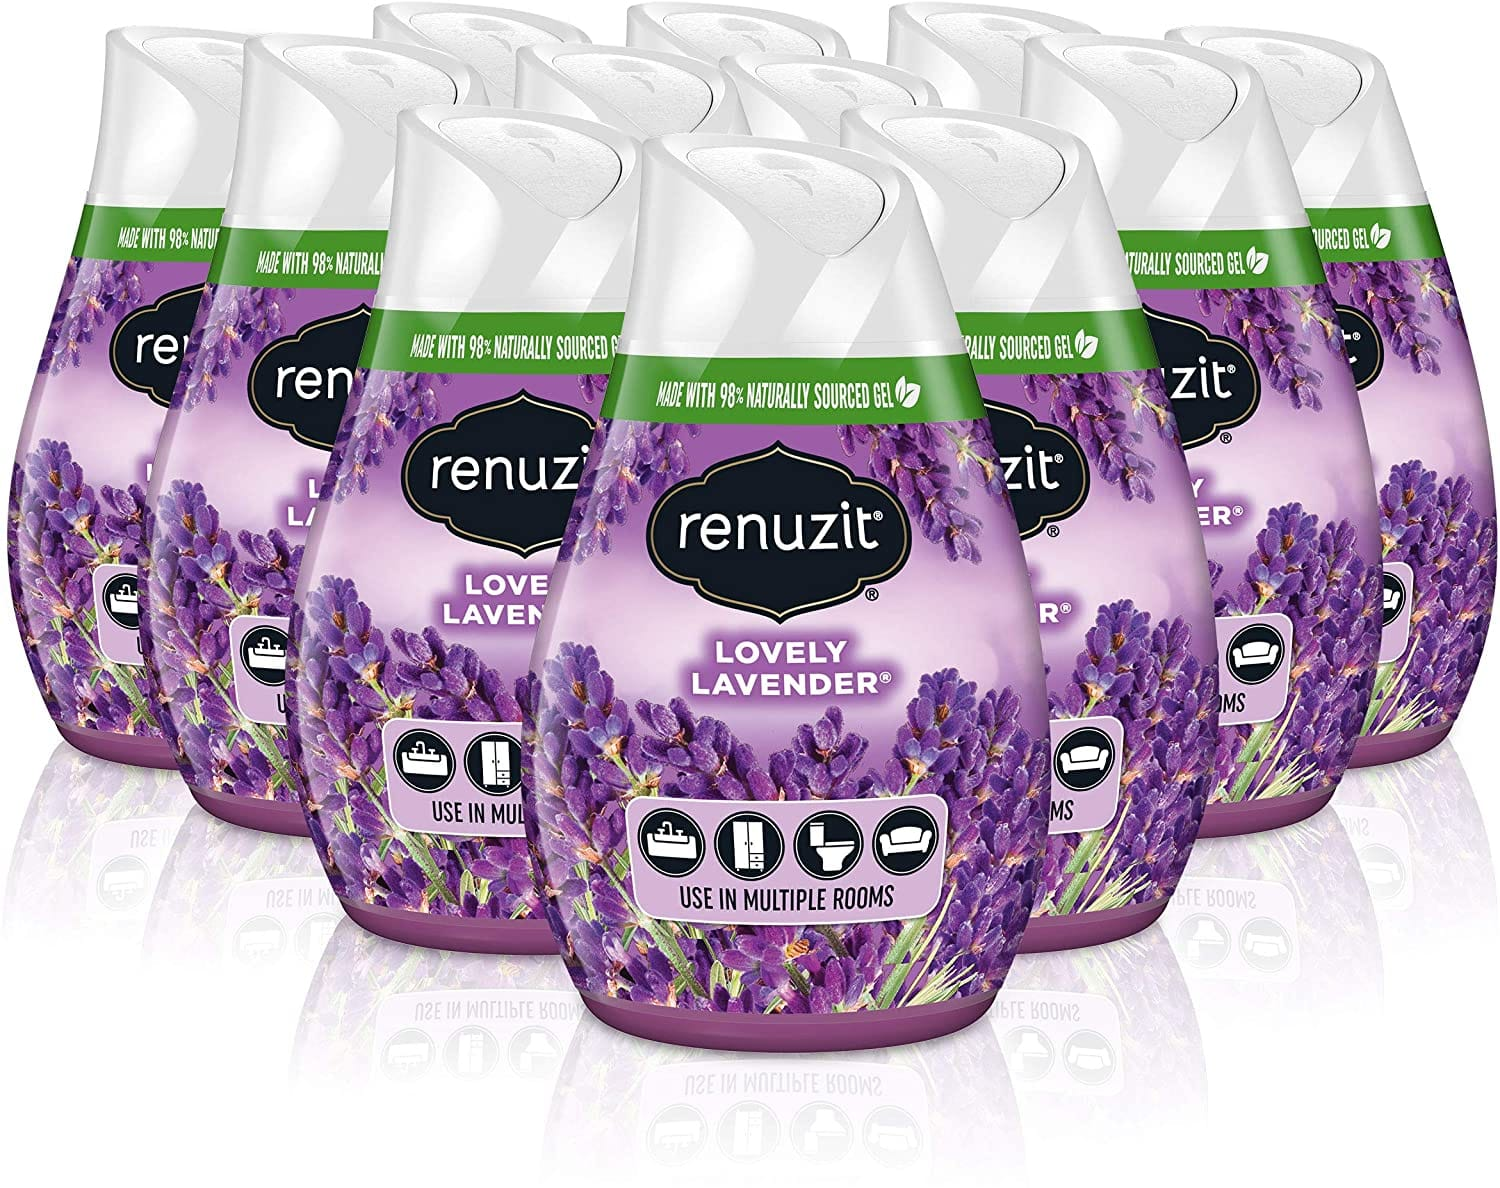 12-Count 7-Oz Renuzit Gel Air Freshener (Lovely Lavender) $7.25 w/ S&S + Free Shipping w/ Prime or on $25+